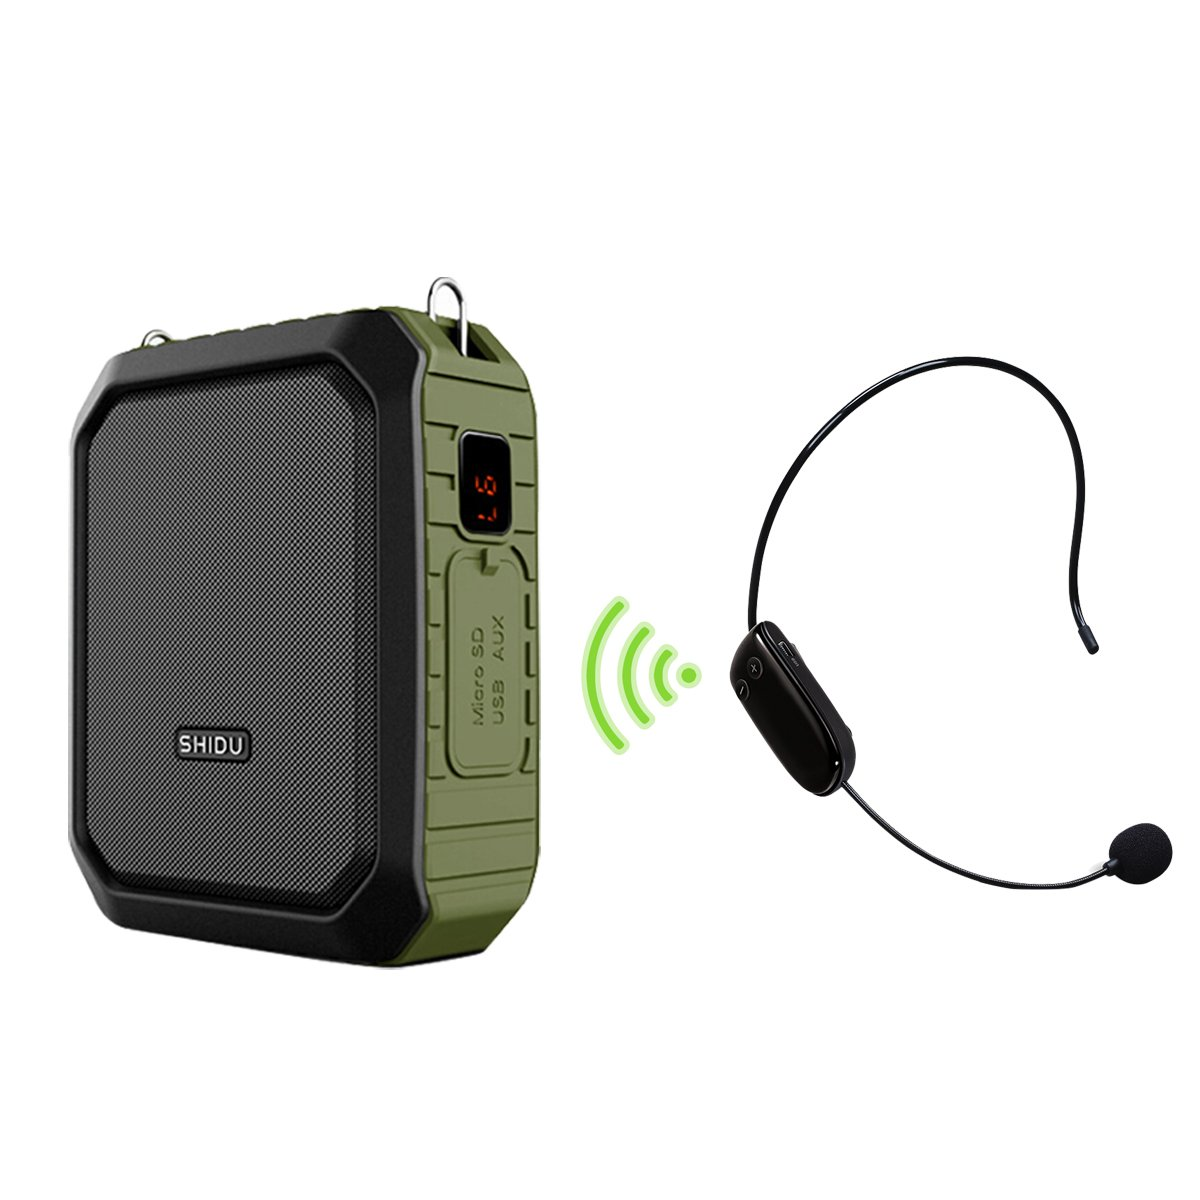 Bluetooth Voice Amplifier 18W Portable Pa System Wireless Microphone Rechargeable Waterproof Speaker Built-In 4400mAh Power Bank Personal Microphone for Teachers,Outdoors,Large Groups